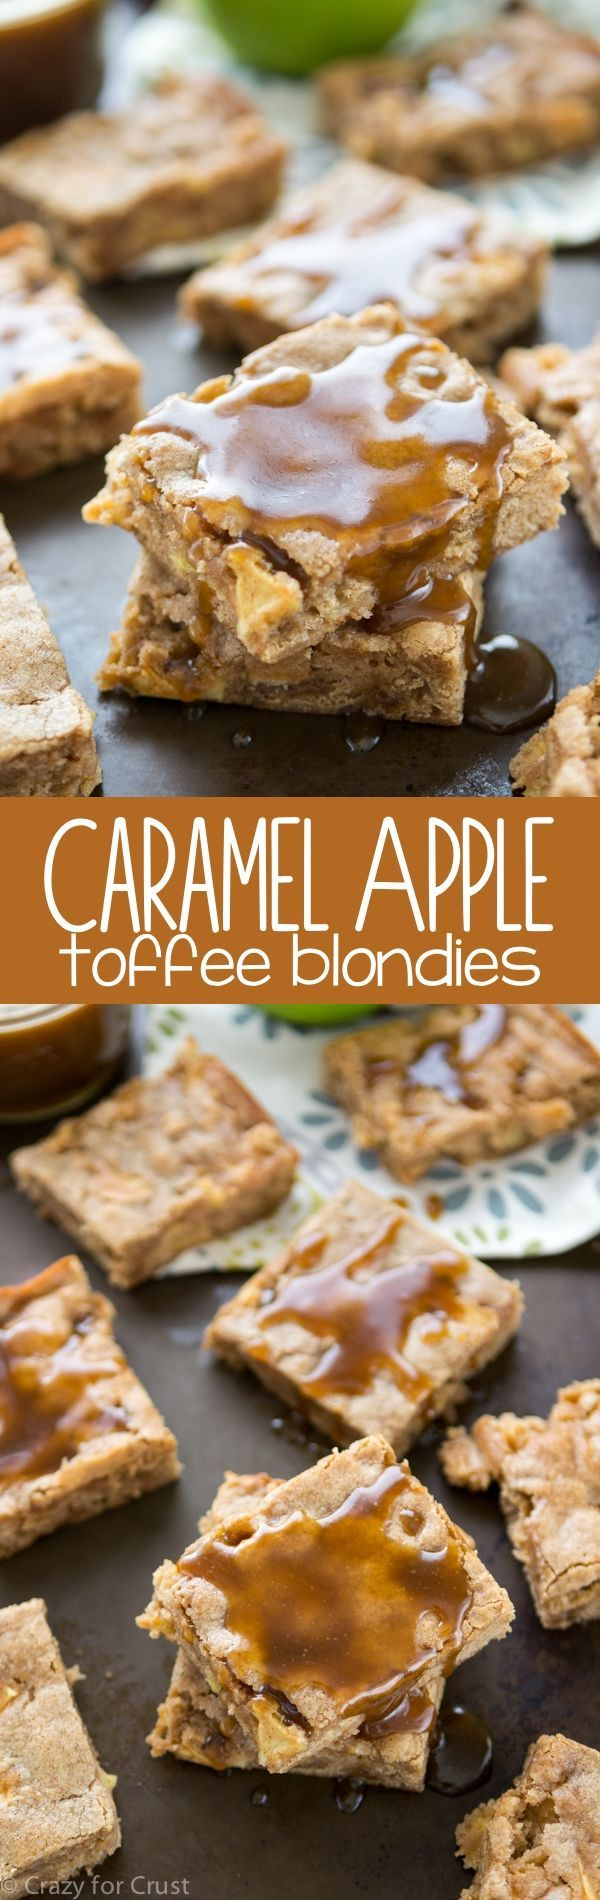 Caramel Apple Toffee Blondies - my favorite easy blondie recipe filled with toffee and apples and doused with homemade caramel sauce!